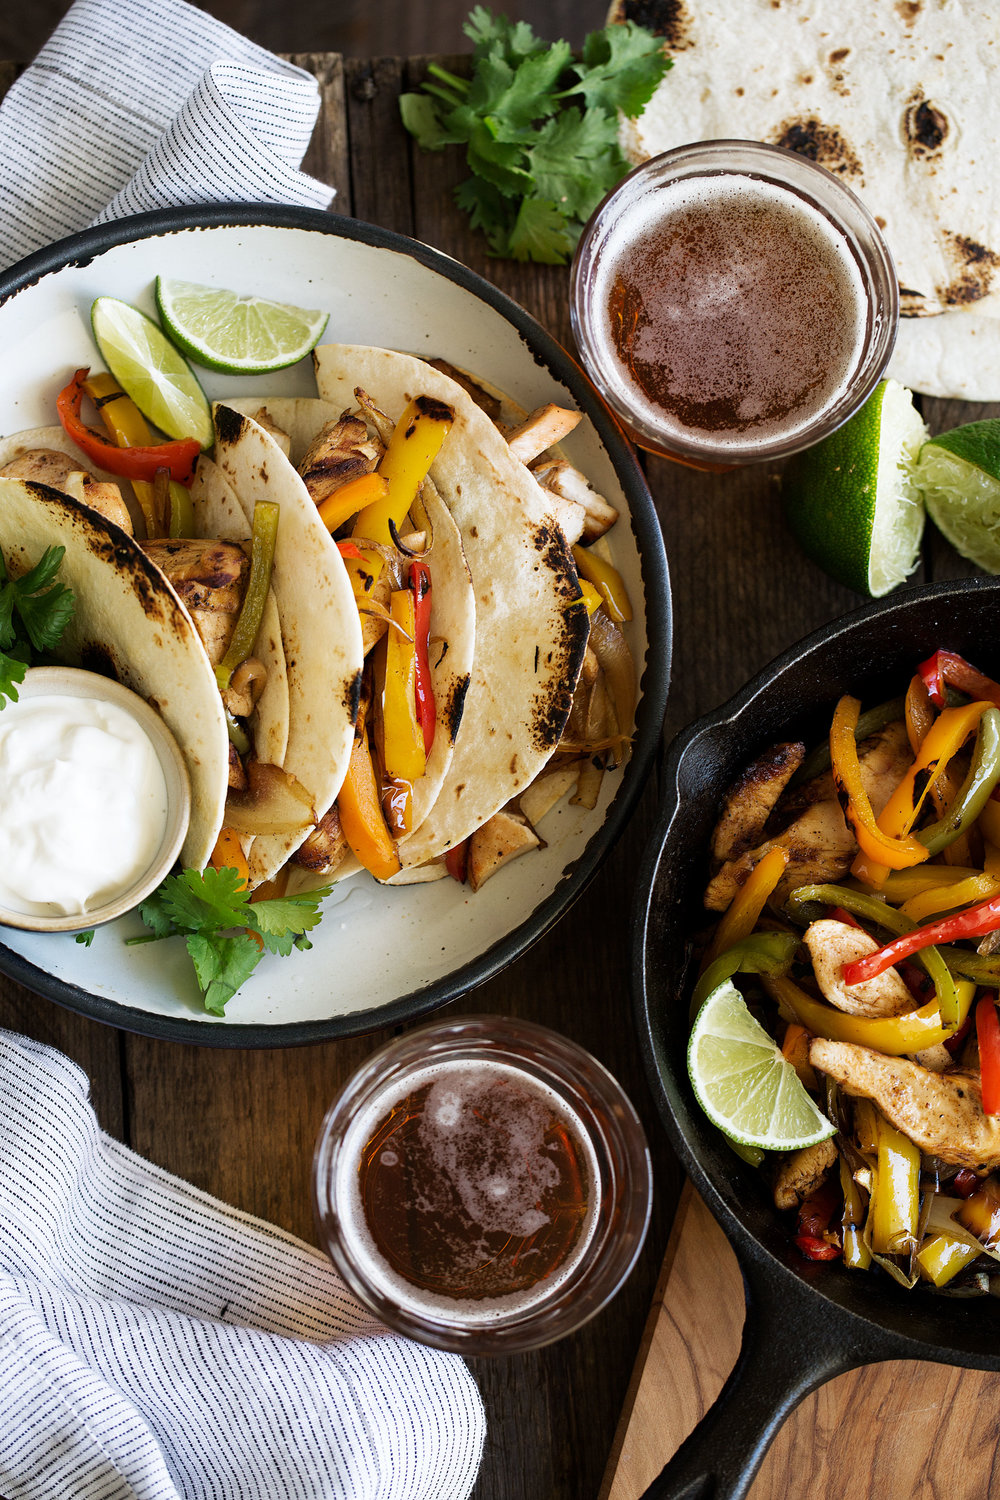 Tequila lime chicken fajitas cooking with cocktail rings overhead